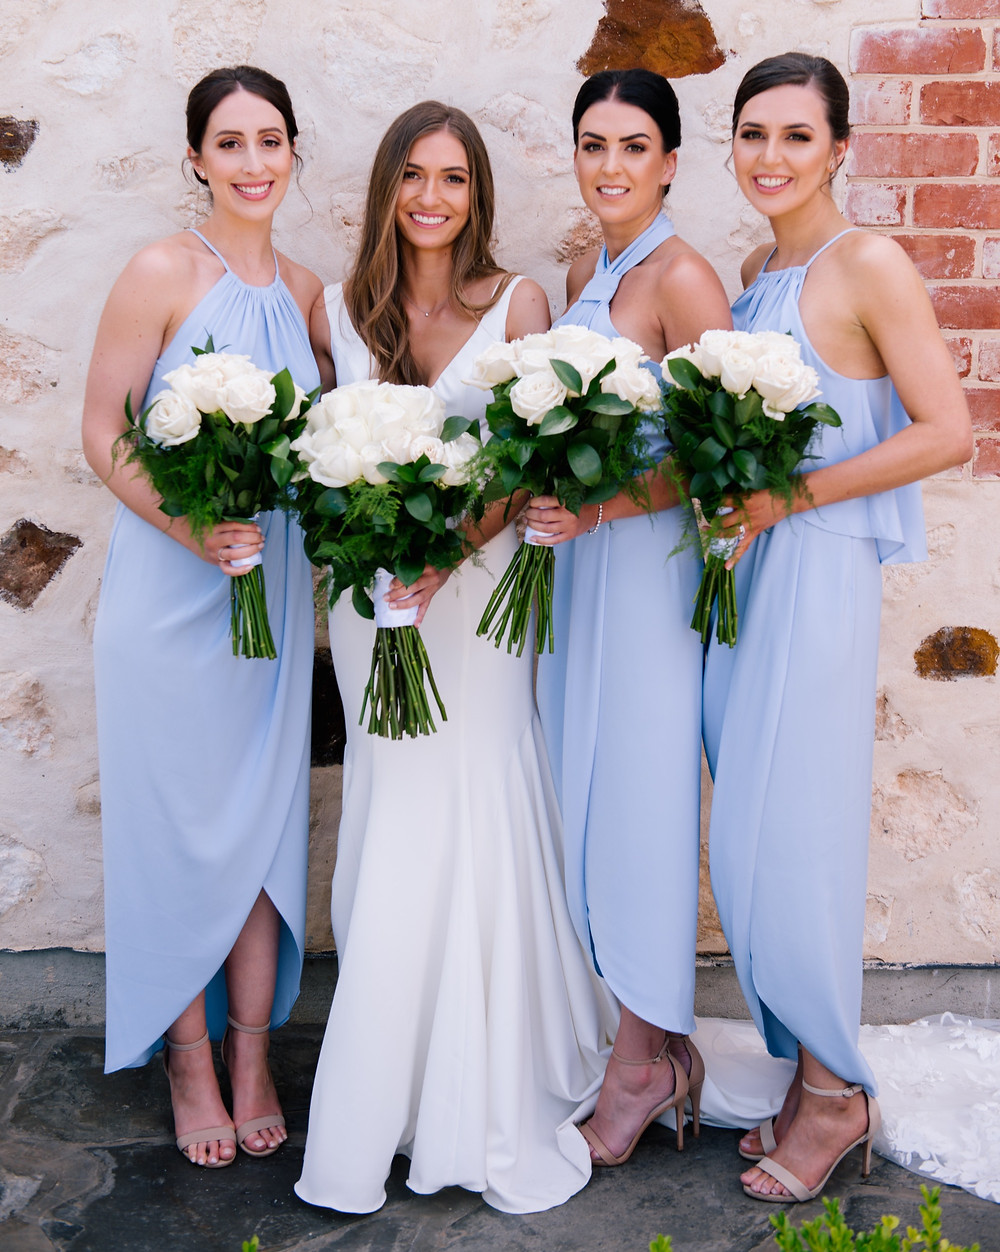 airbrush makeup on bride and bridesmaids